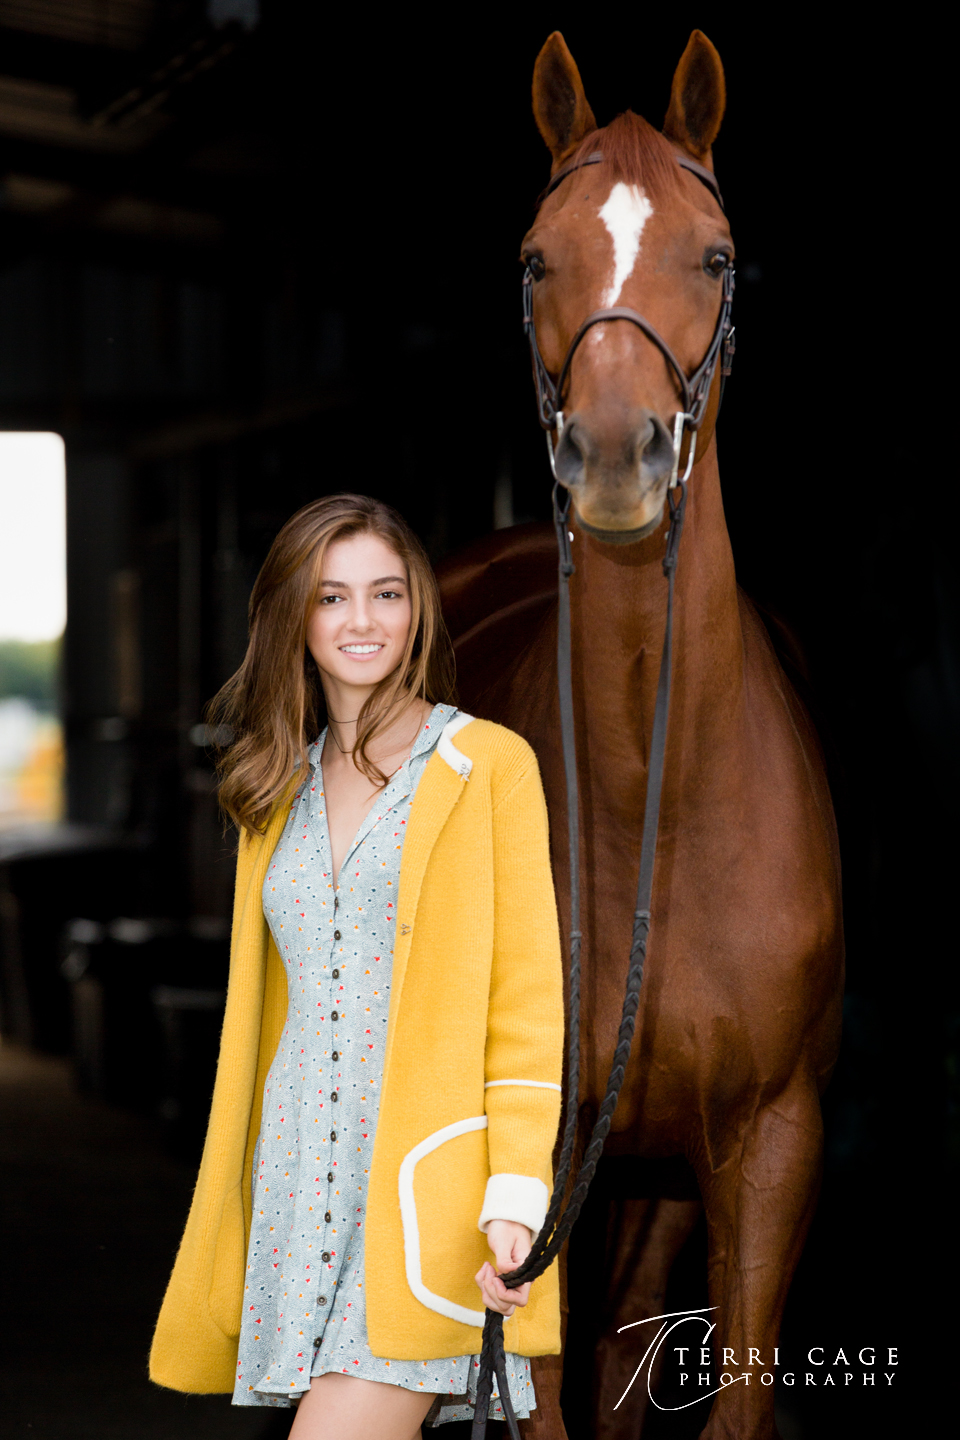 barndoor photos, equine, treeline, stables, senior portraits